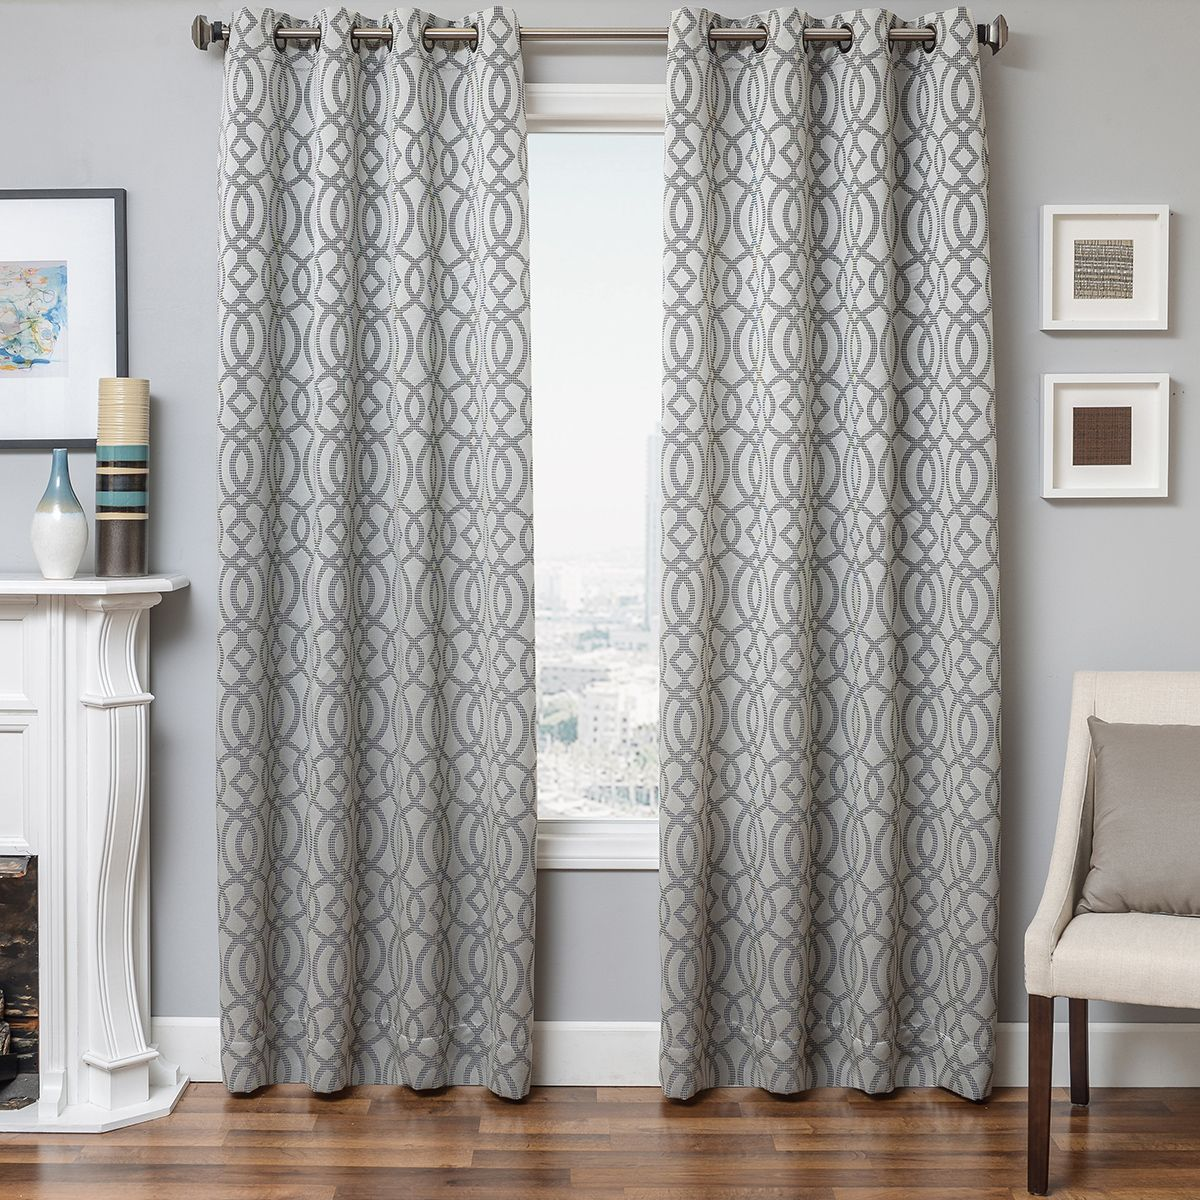 Geometric Pattern Curtains Dazzle Home Online Panel Curtains